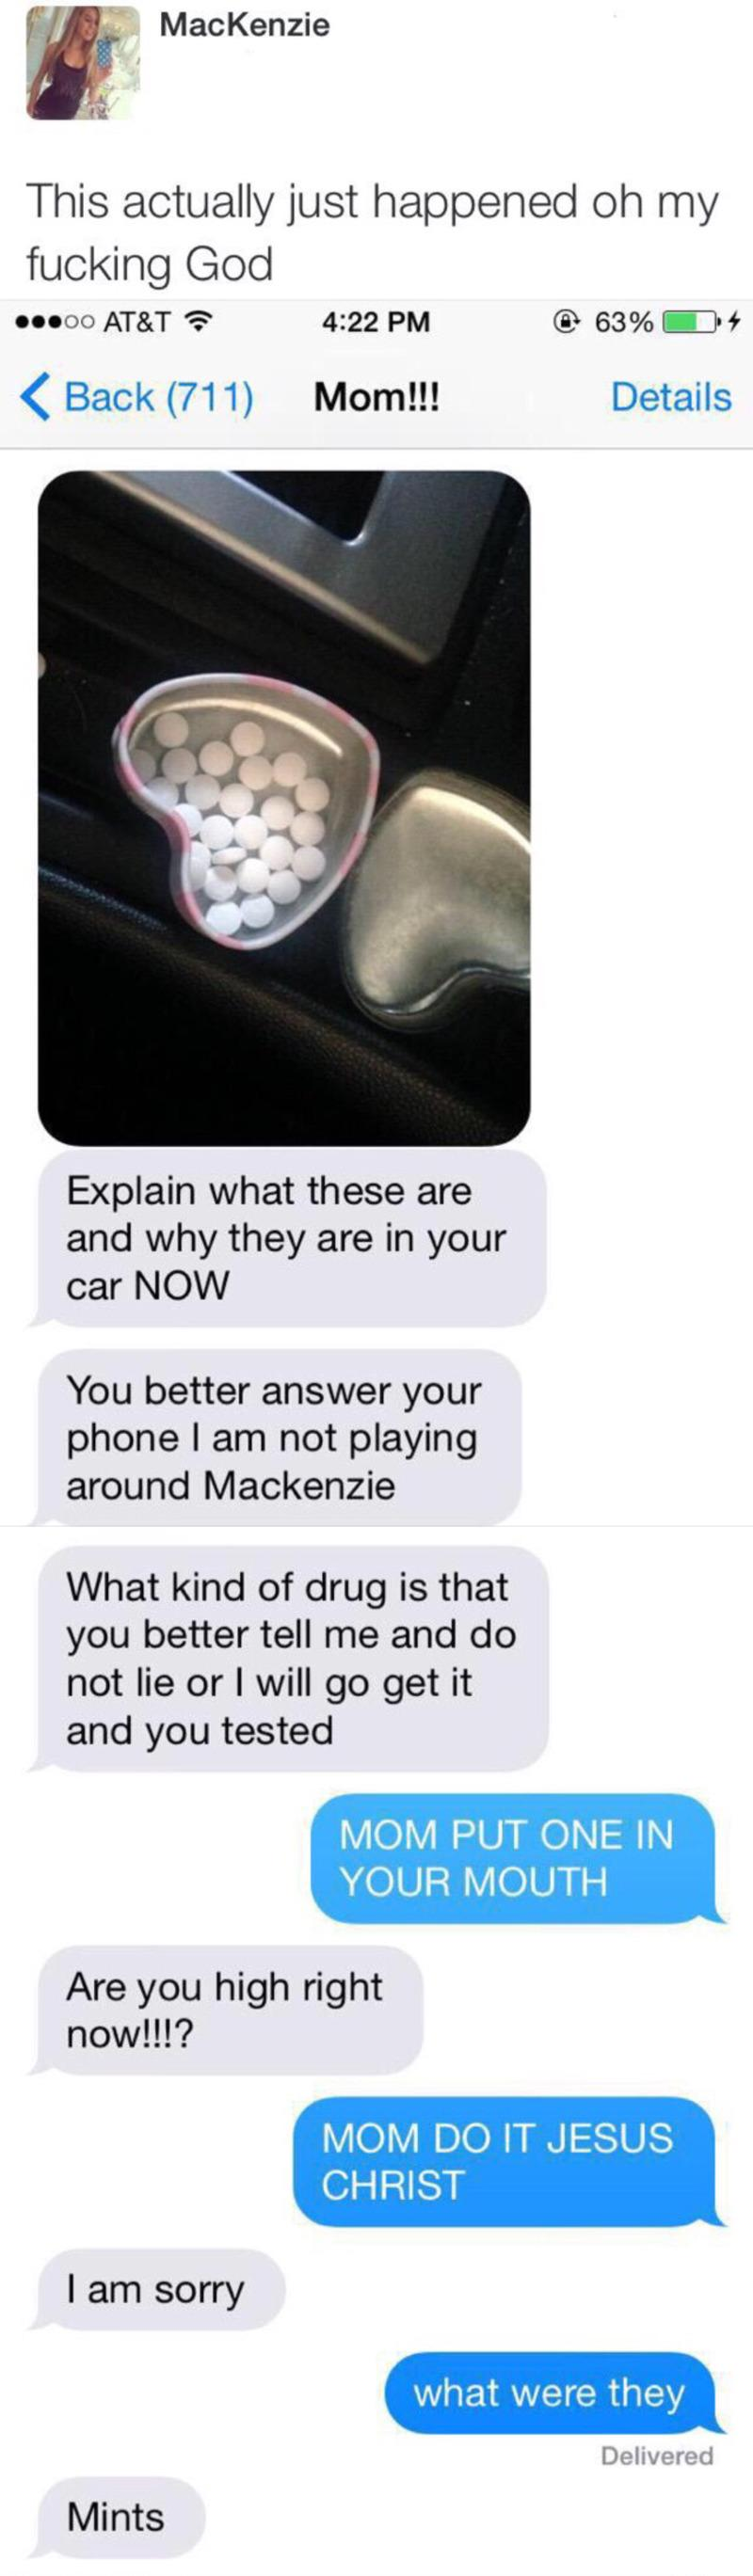 parents-text-mom-pills